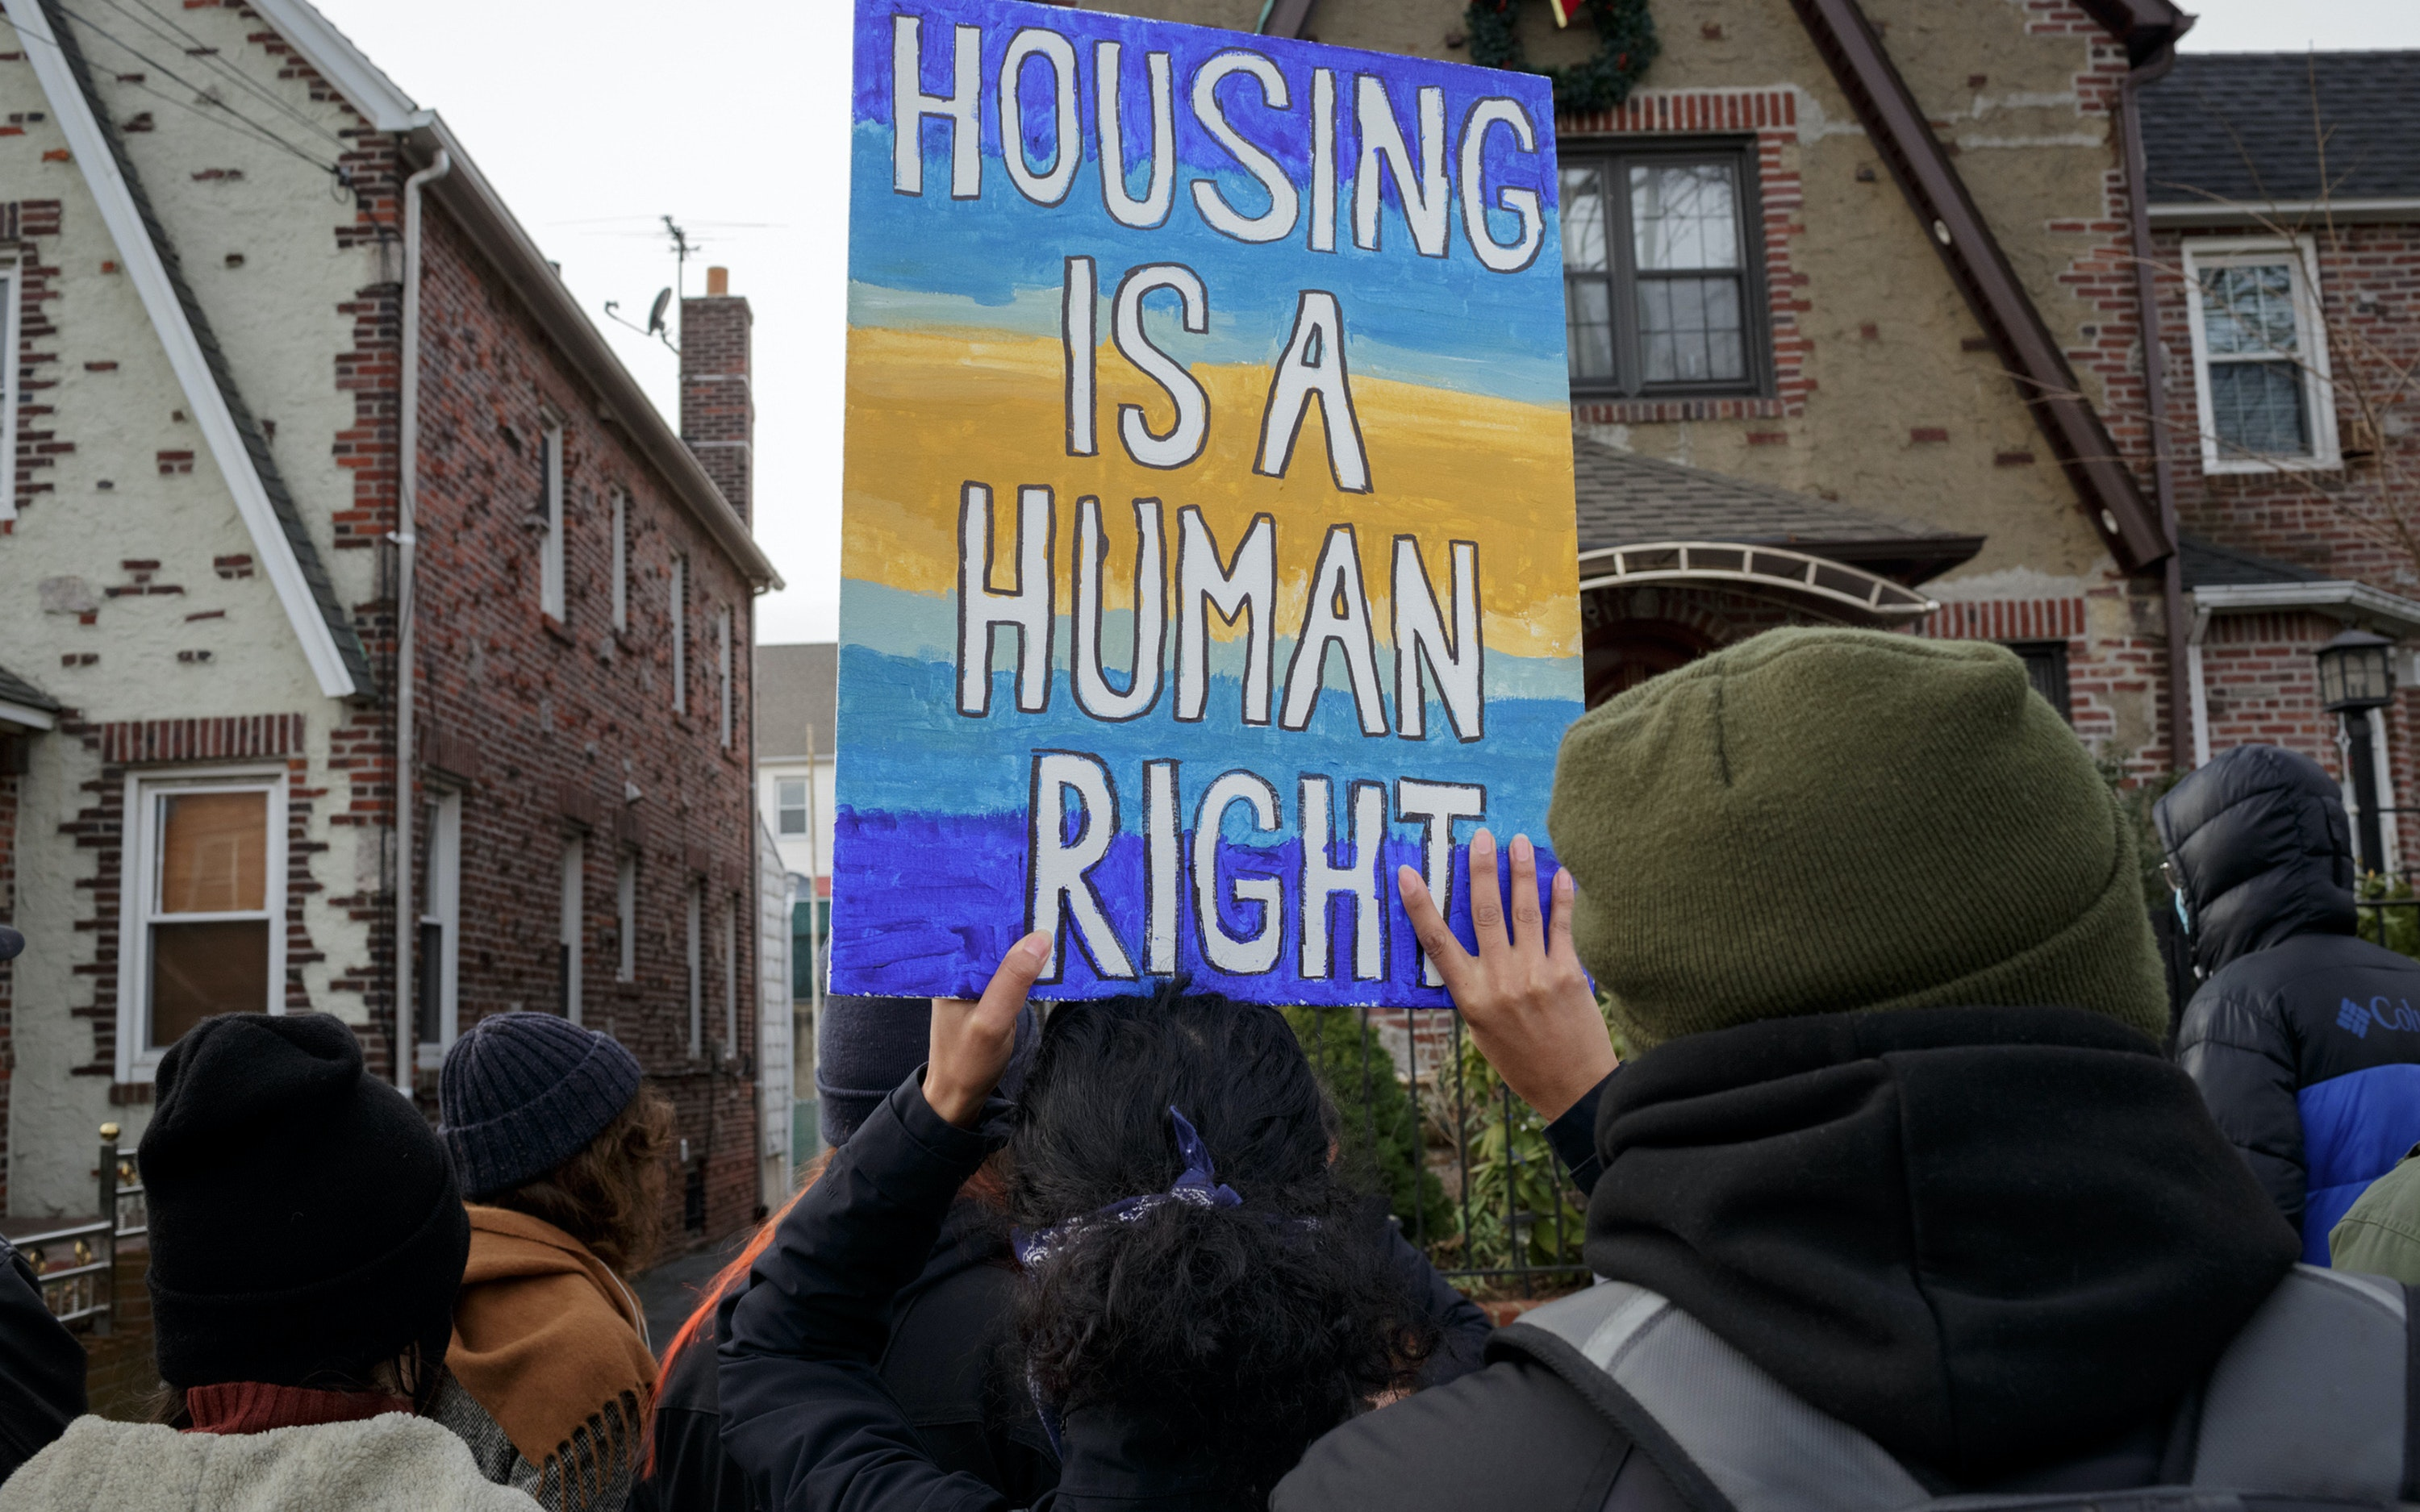 People gather for a protest for housing security in New York City.